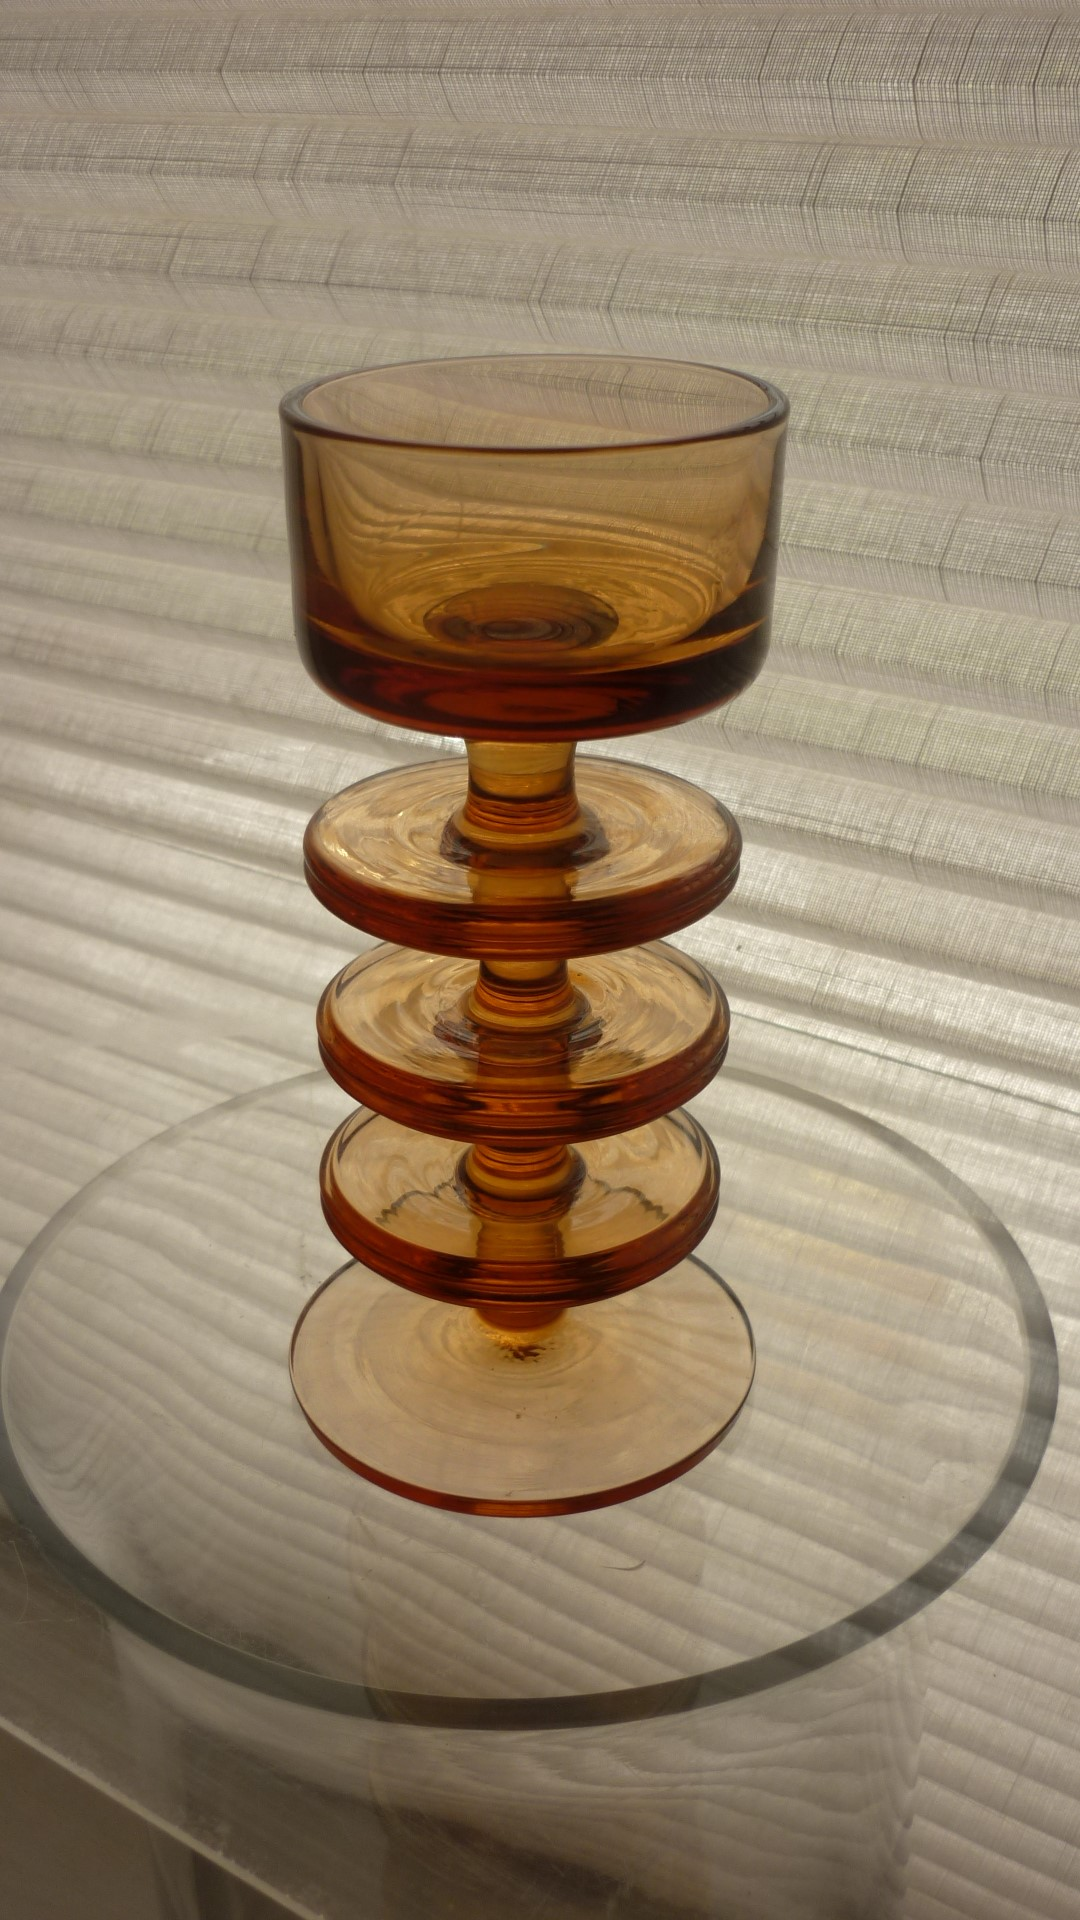 Topaz Ronald Stennet-Willson three ring Sherringham Pattern RSW13 glass candle holder.